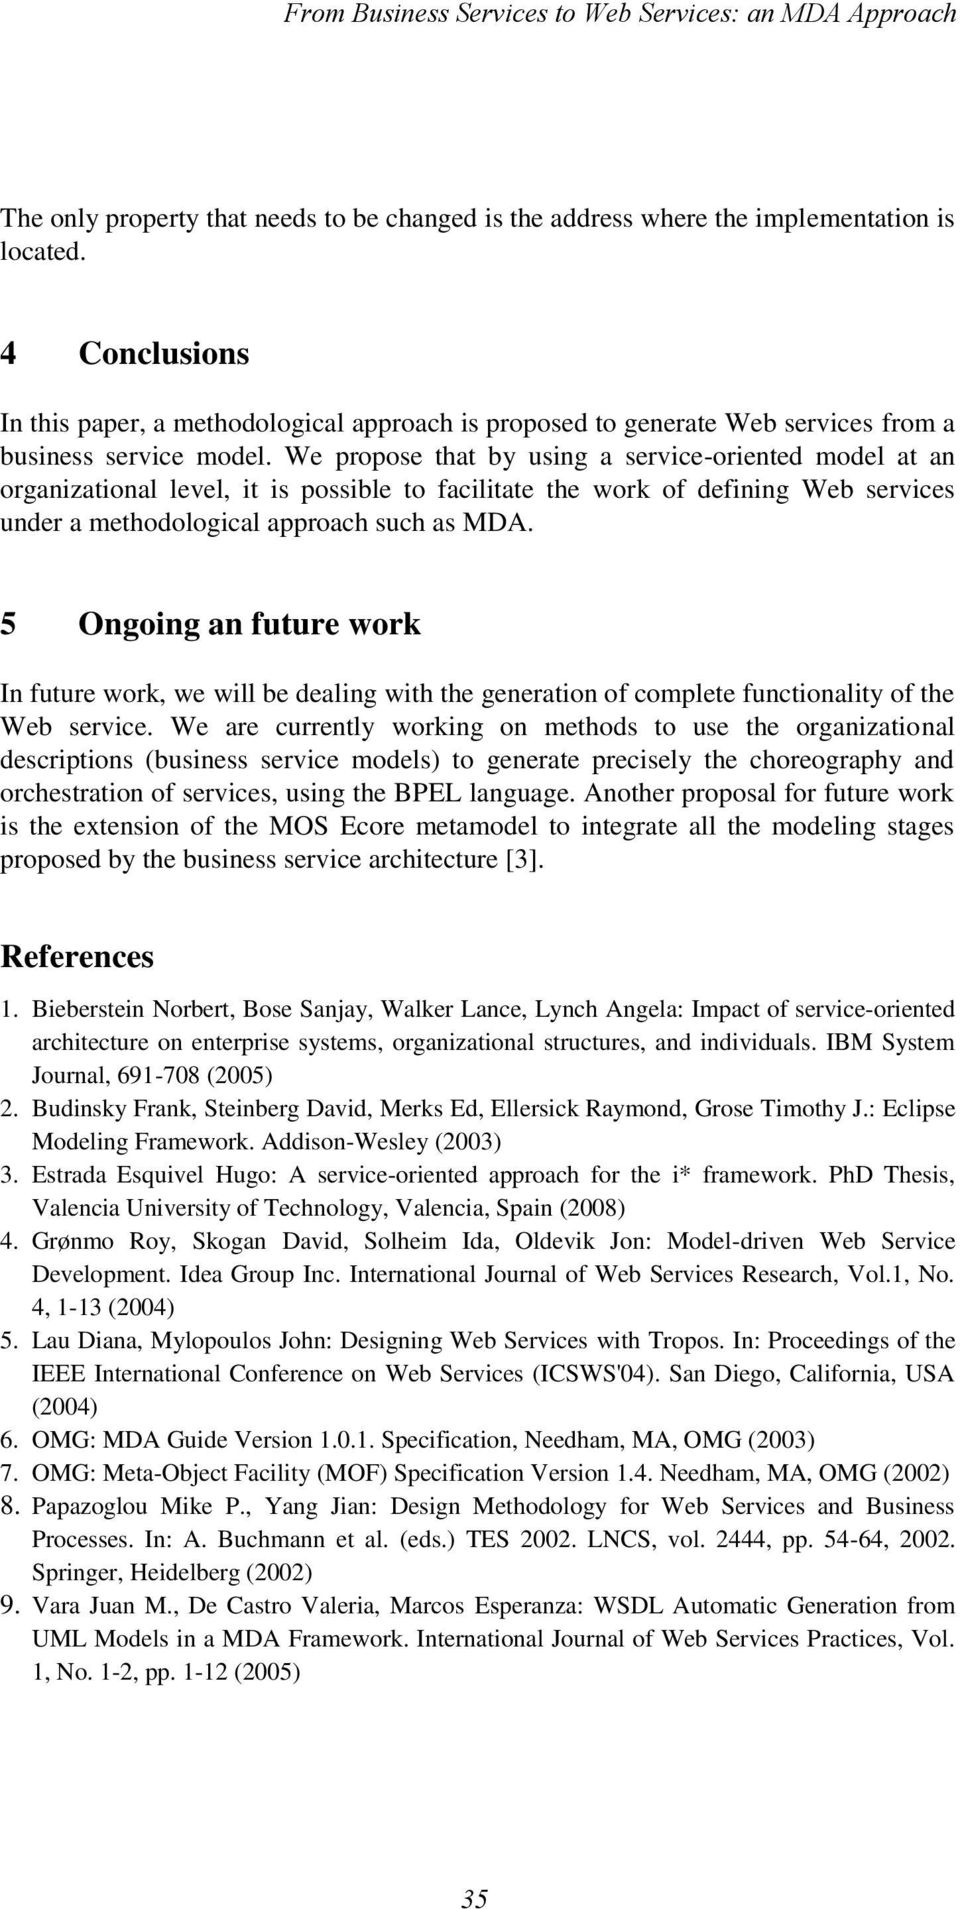 We propose that by using a service-oriented model at an organizational level, it is possible to facilitate the work of defining Web services under a methodological approach such as MDA.